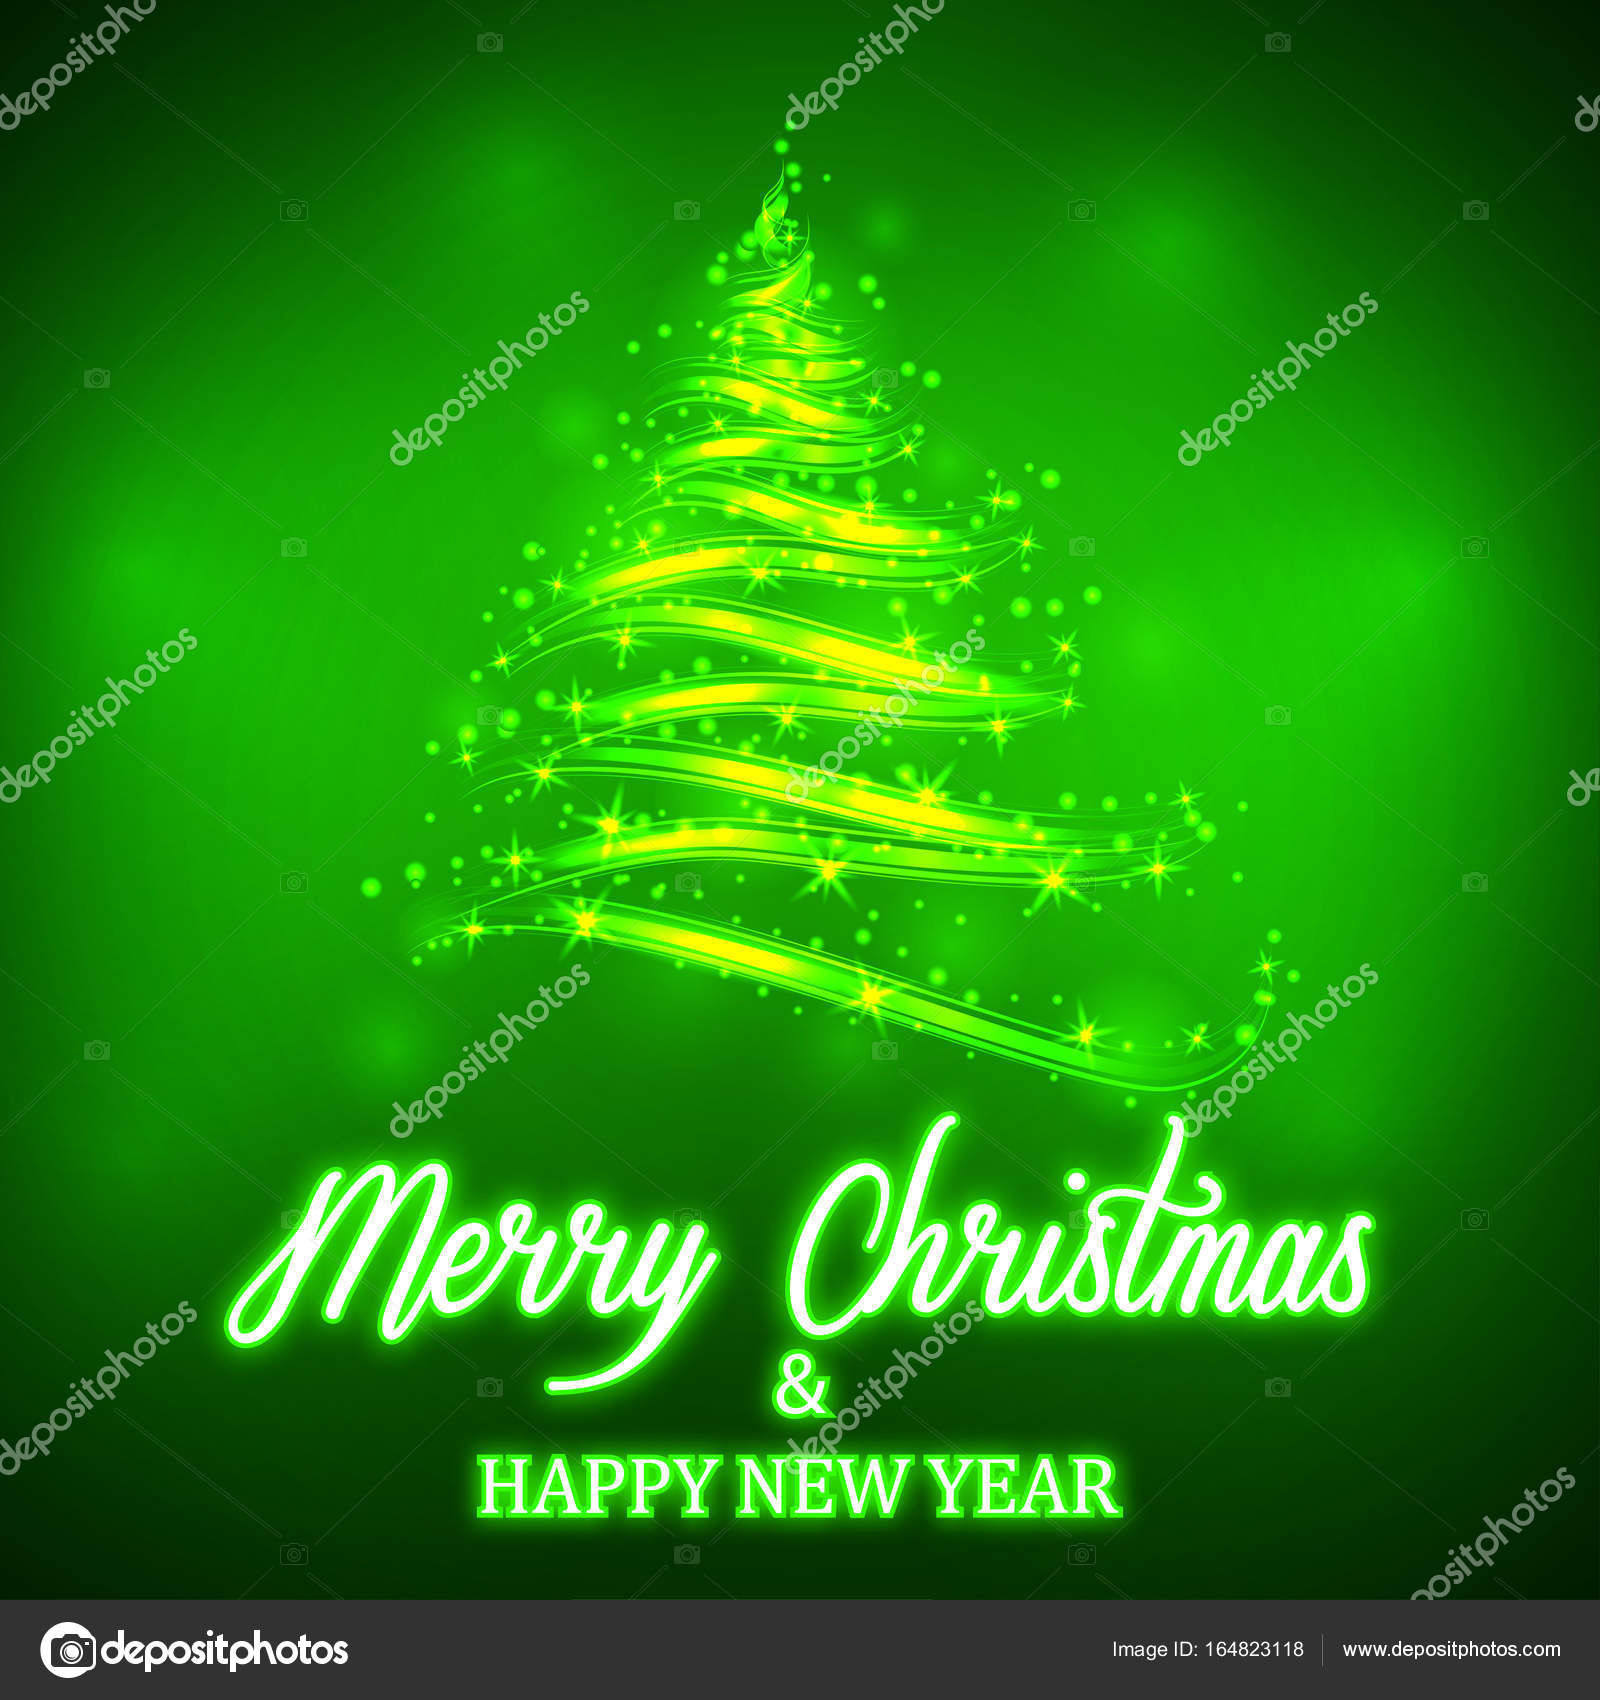 shiny green christmas tree with neon merry christmas and happy new year lettering on colorful background template for winter holidays vector illustration